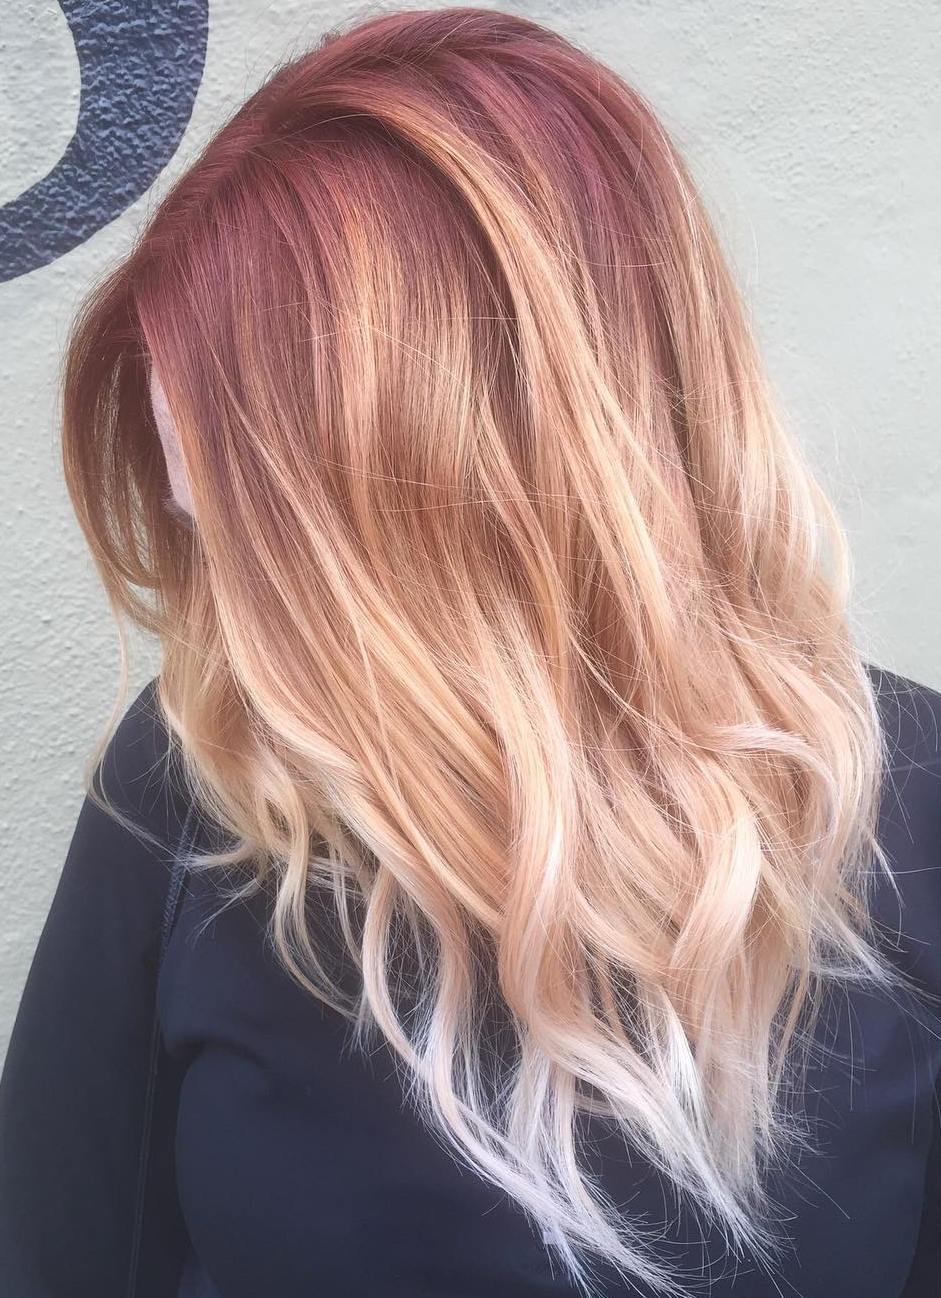 14-pink-to-blonde-ombre